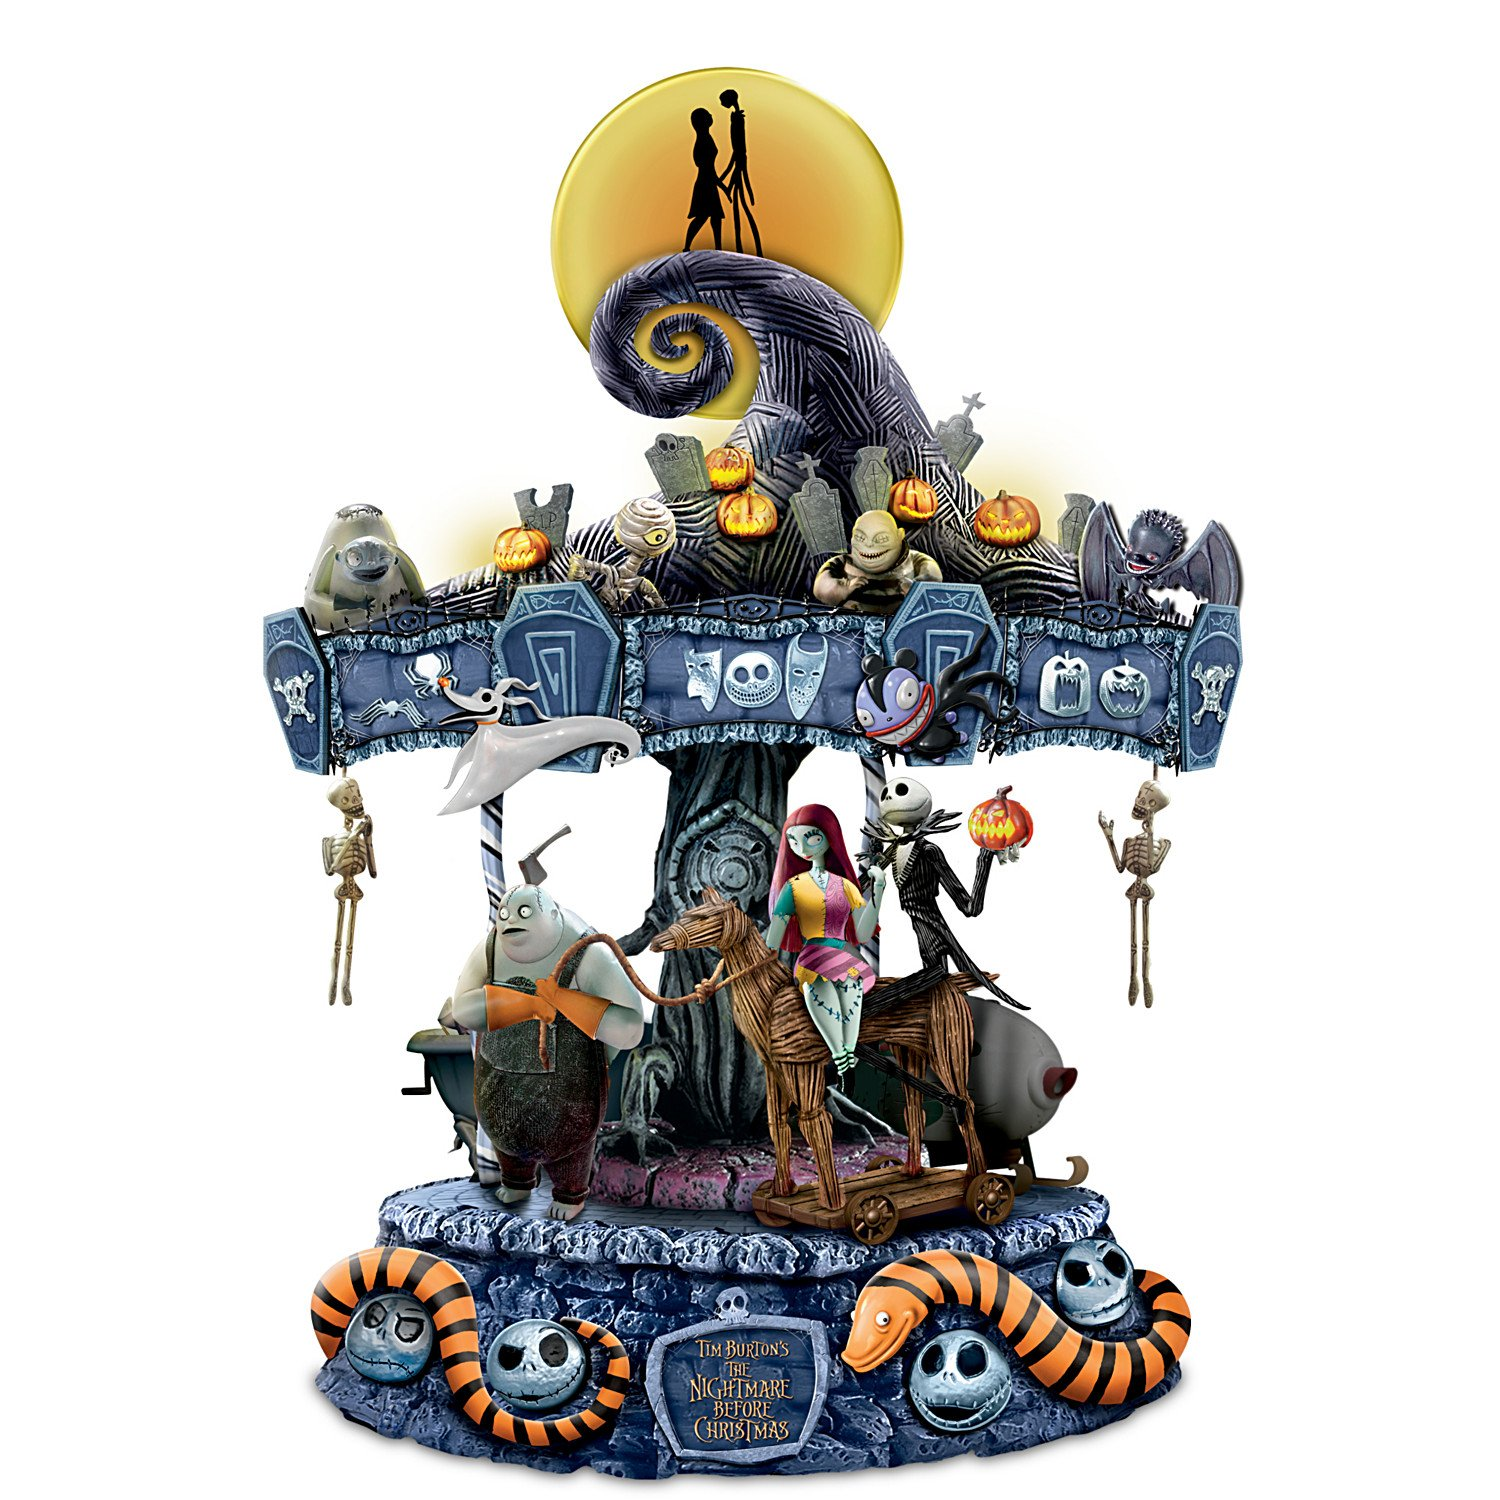 Tim Burton's The Nightmare Before Christmas Rotating Musical Carousel Sculpture: Lights Up by The Bradford Exchange by Bradford Exchange